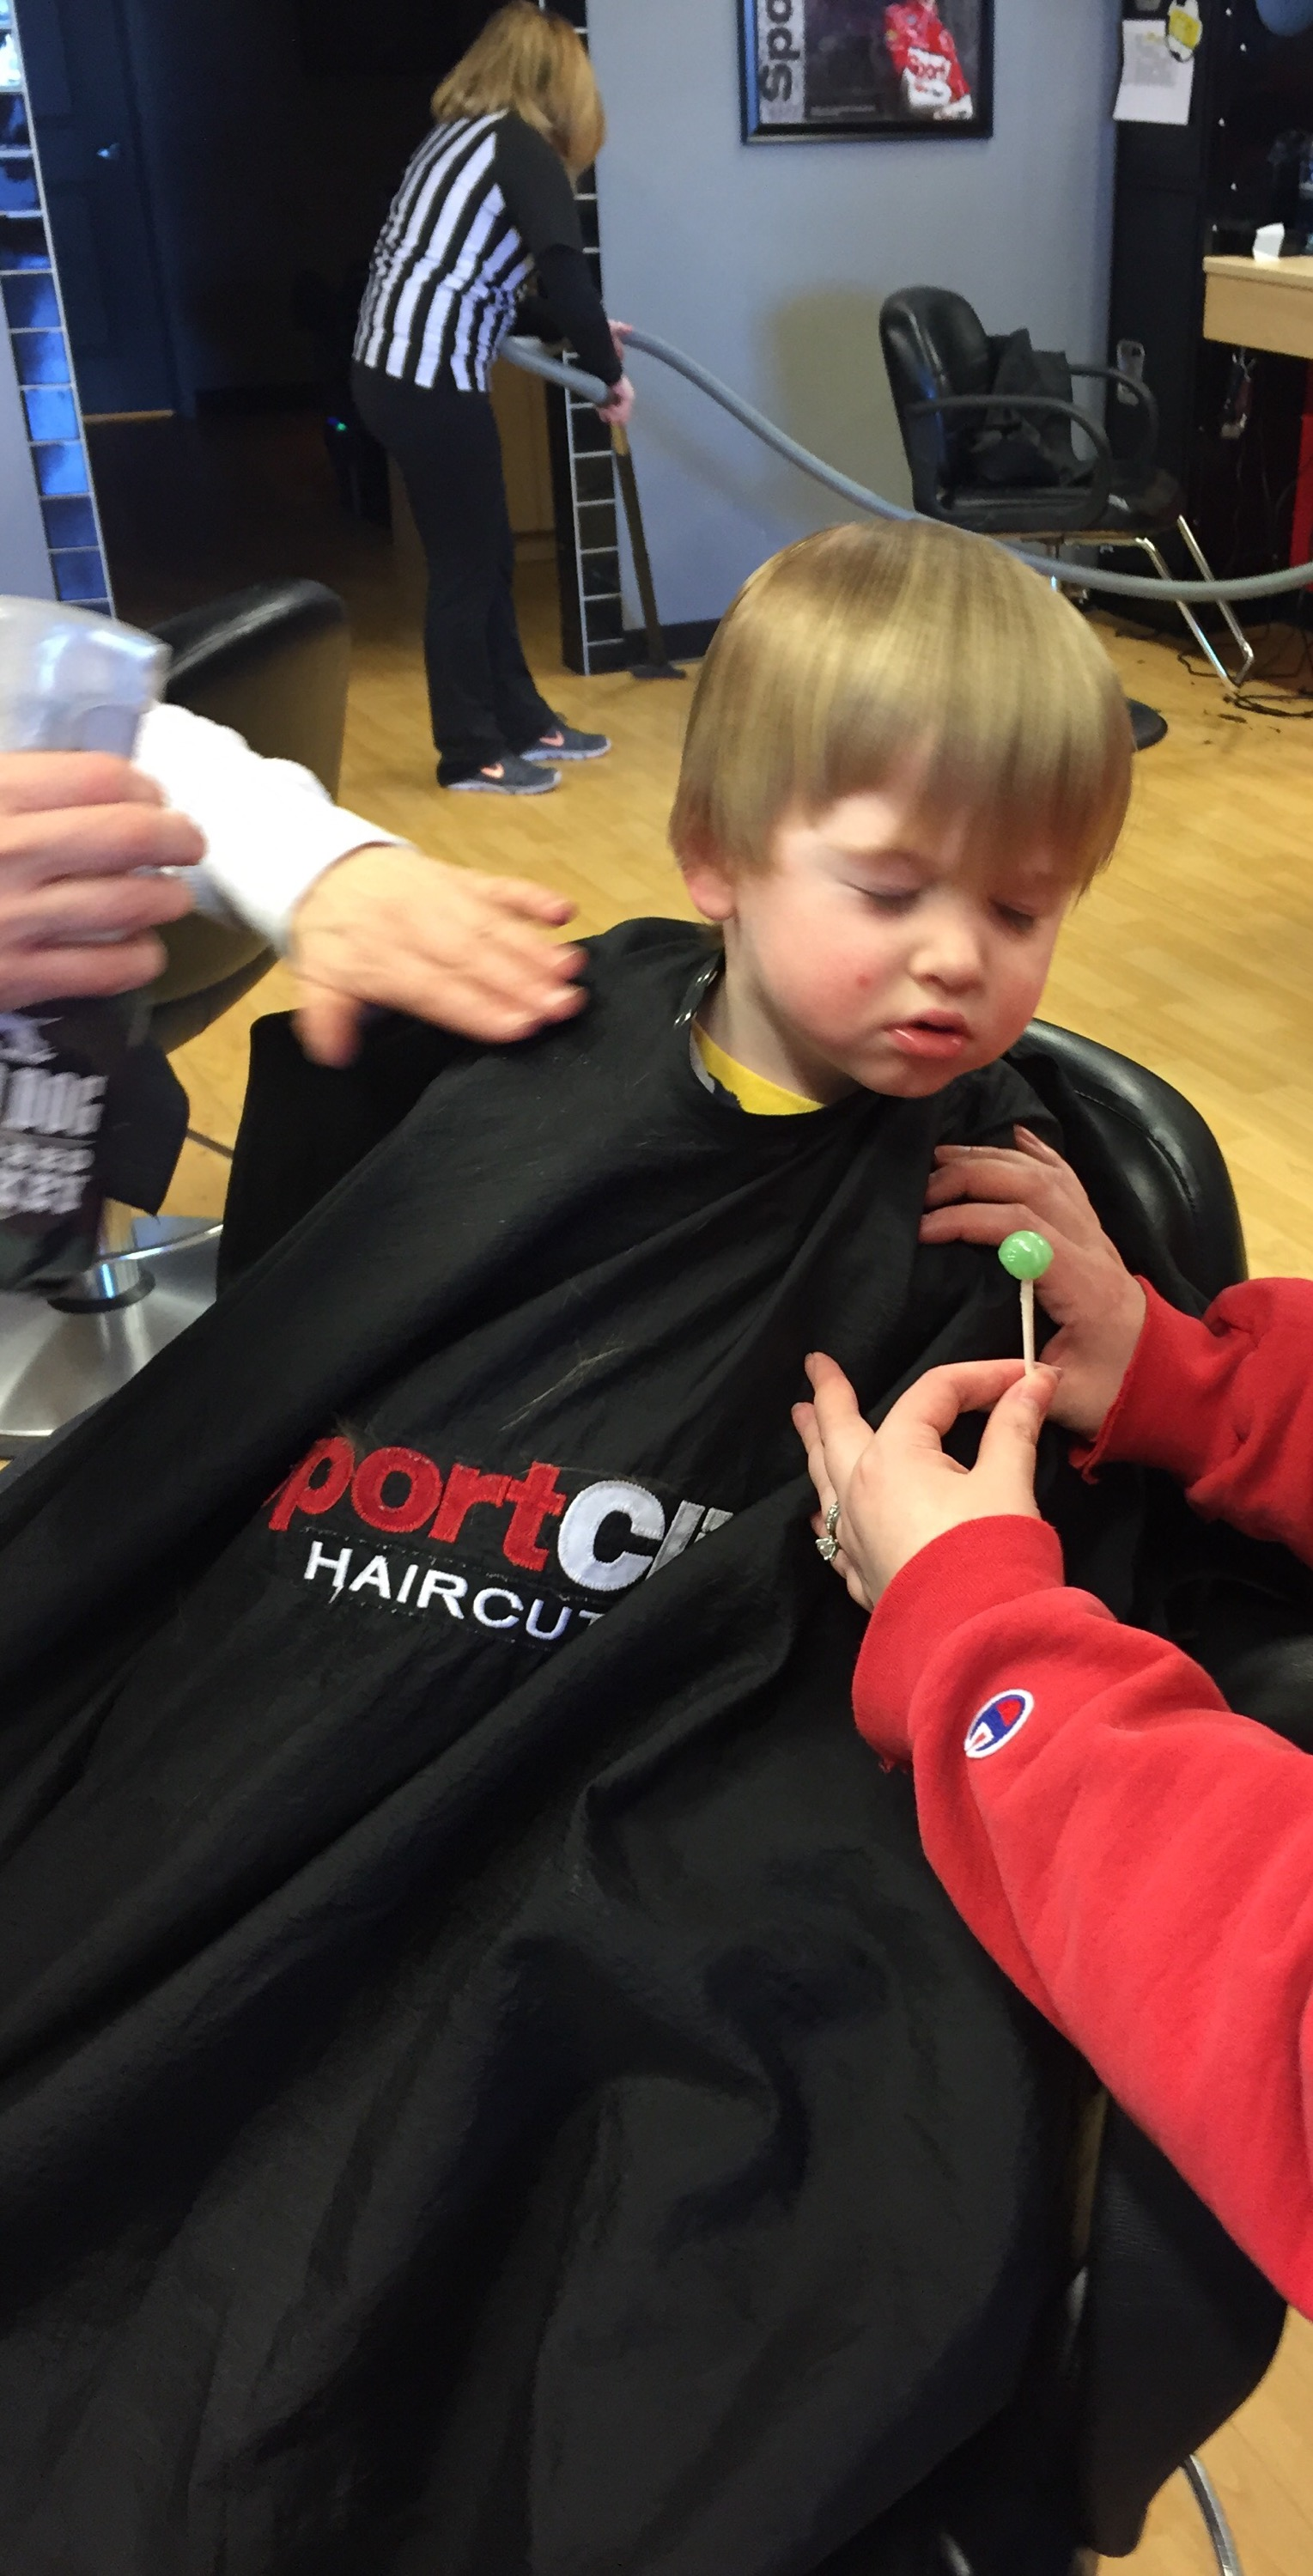 sport clips is better than snip-its for toddler haircuts